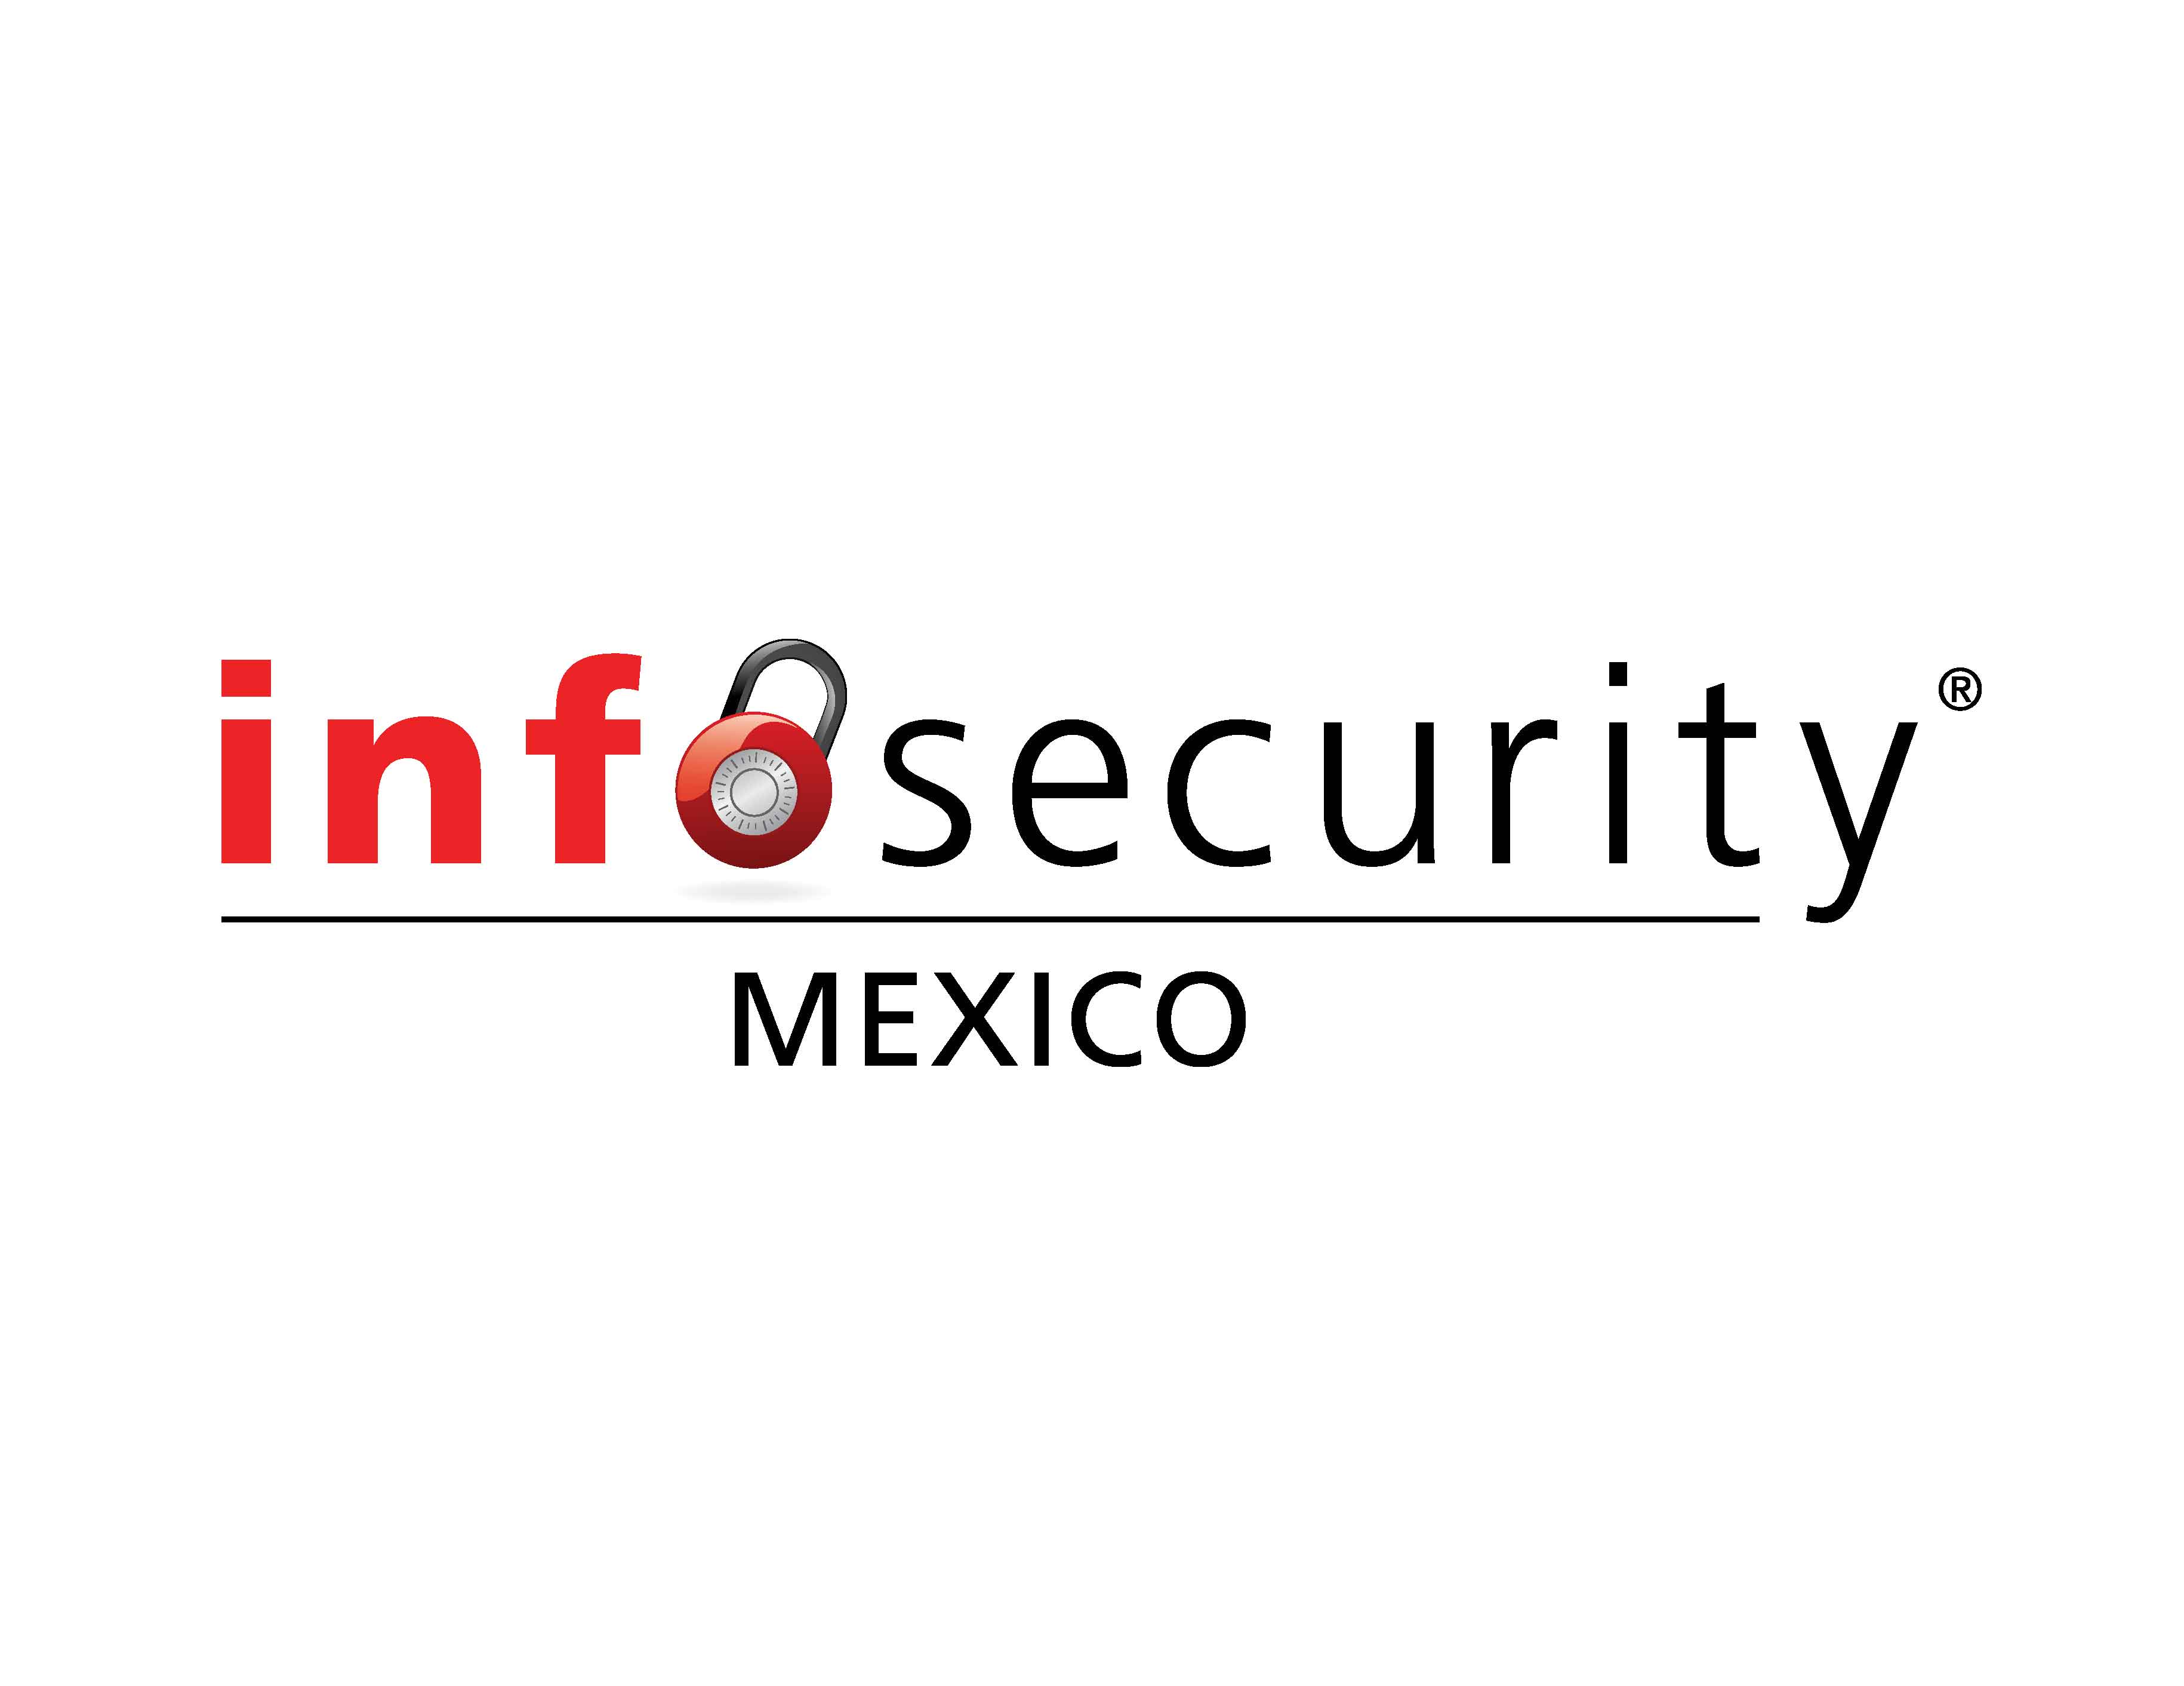 infosecurity_logo.jpg